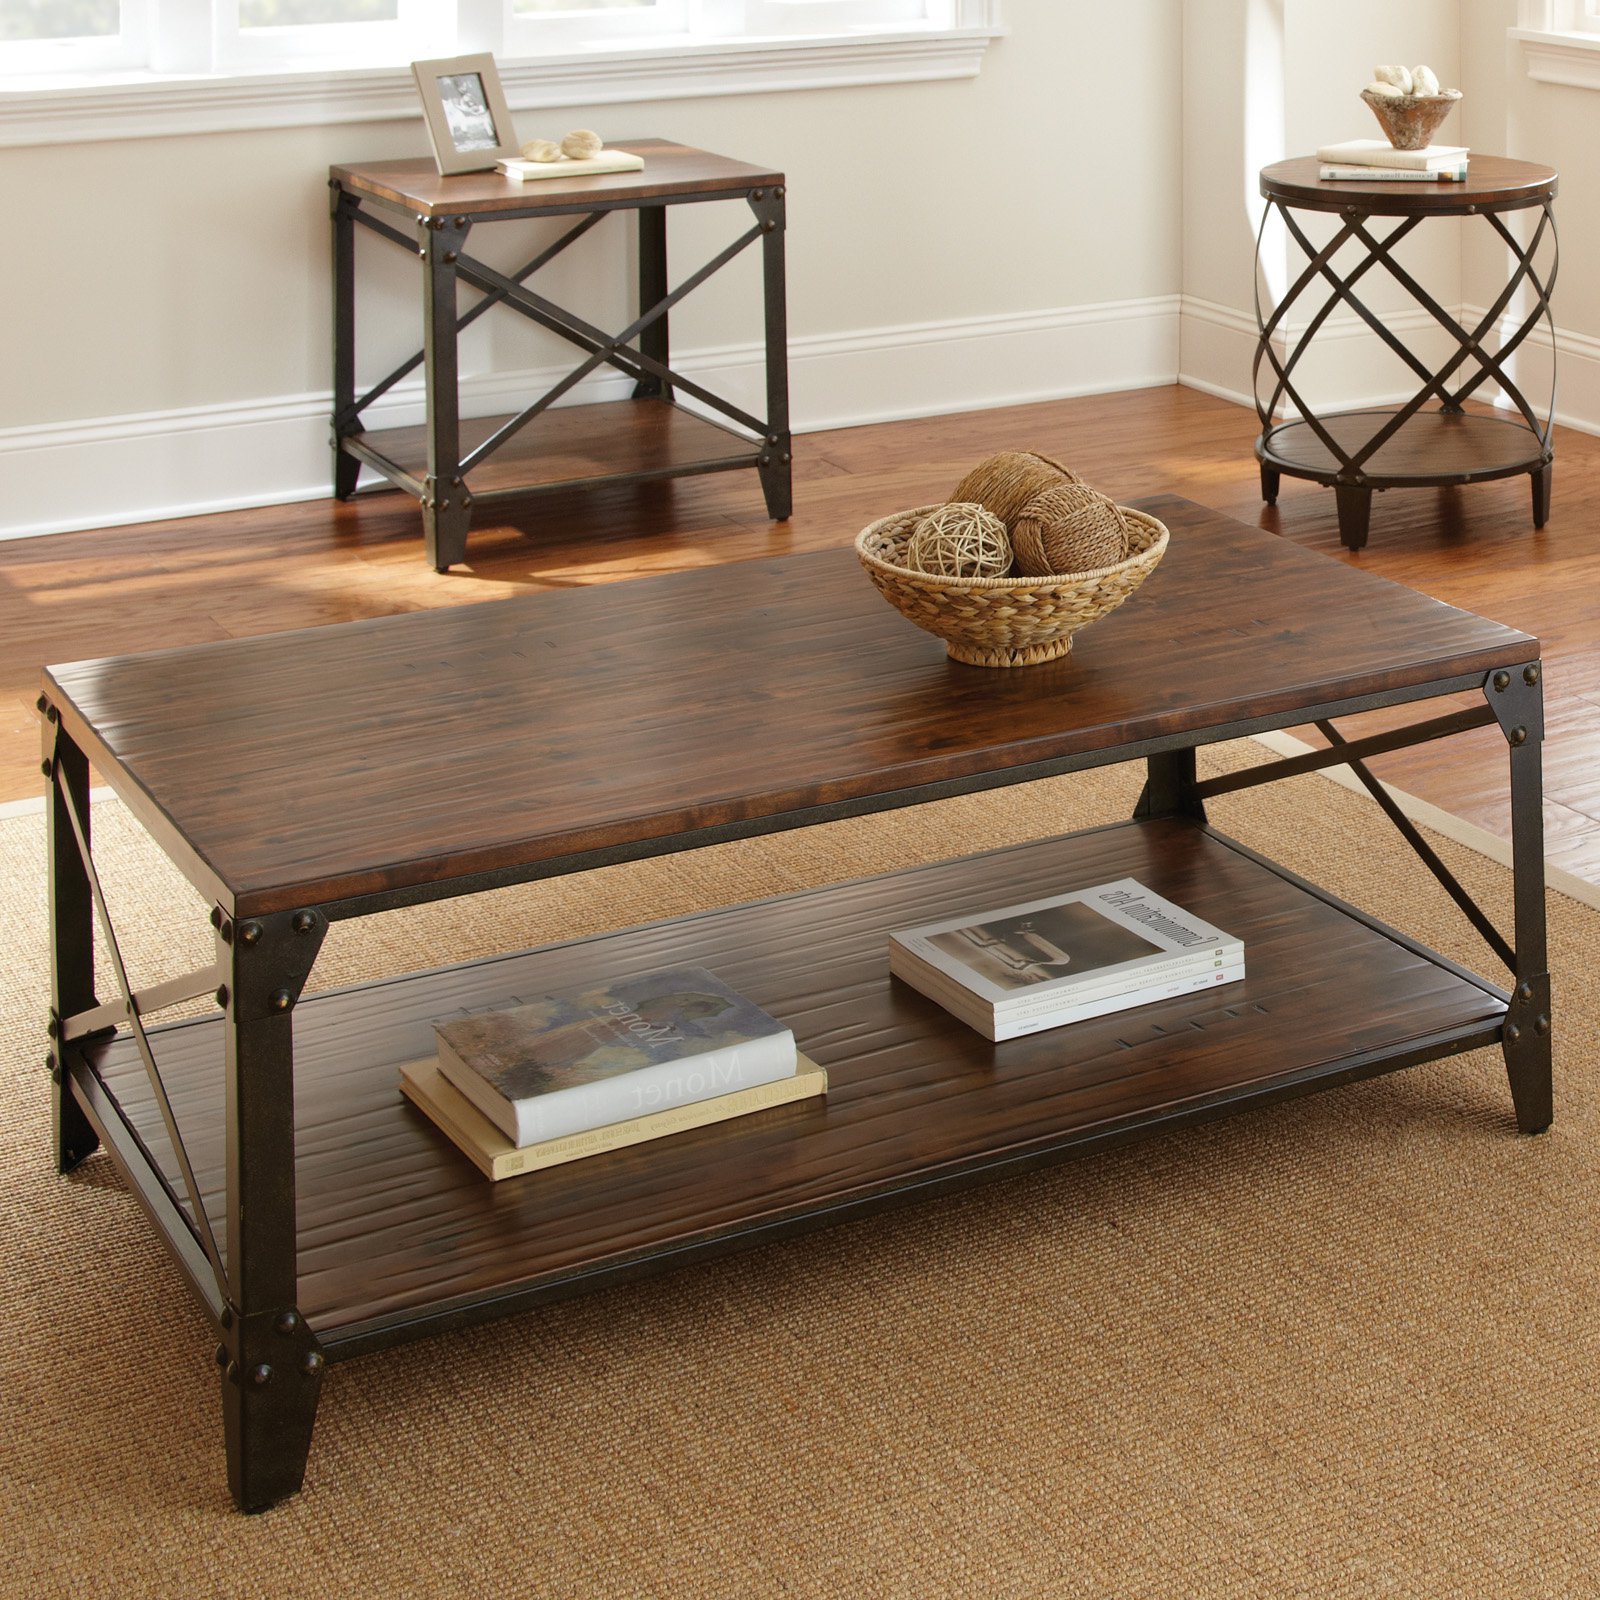 Iron Wood Coffee Tables With Wheels Within Most Recent Steve Silver Winston Rectangle Distressed Tobacco Wood And Metal (View 10 of 20)